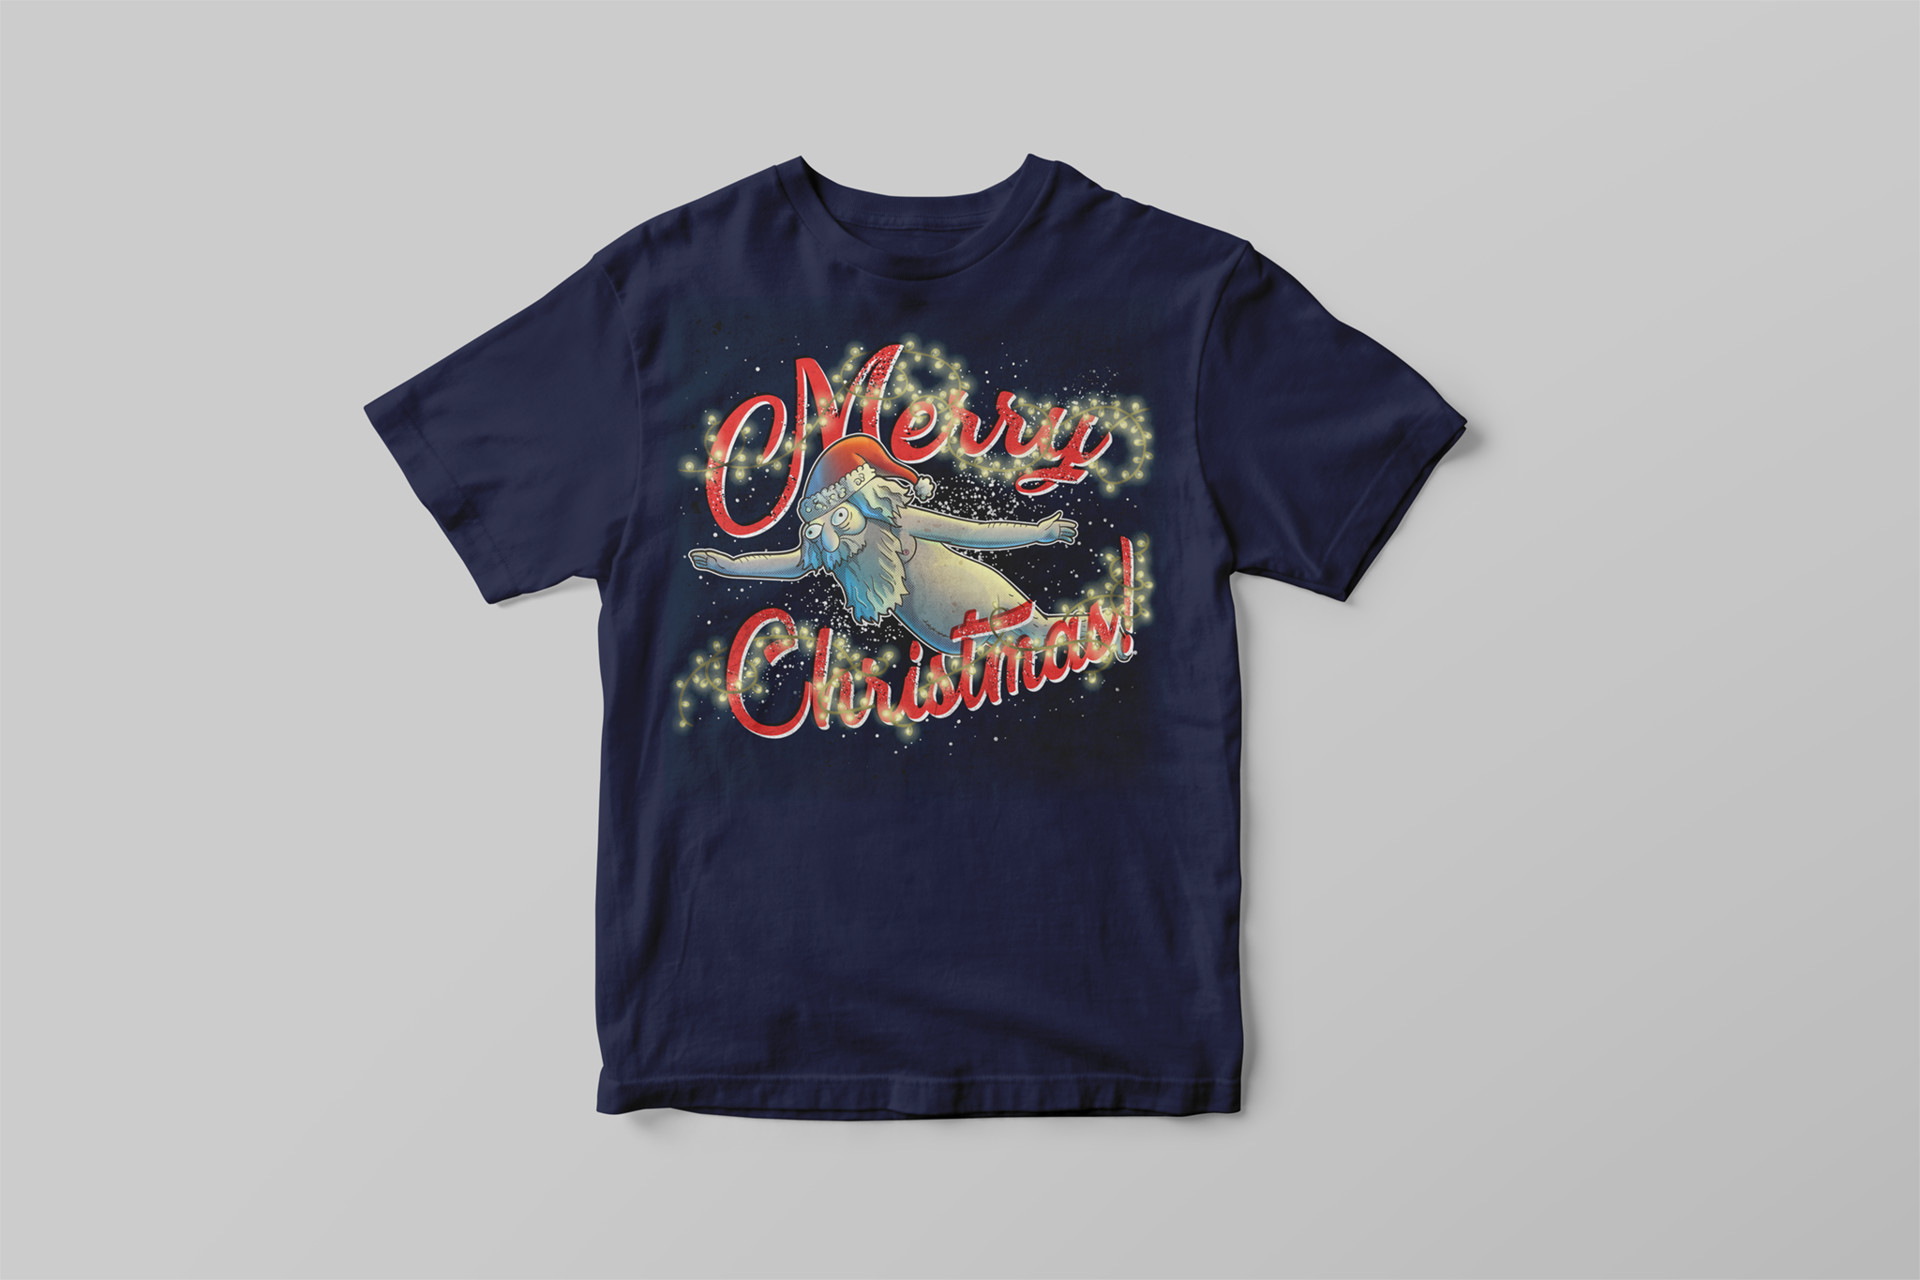 Felipe blanco merry christmas shirt